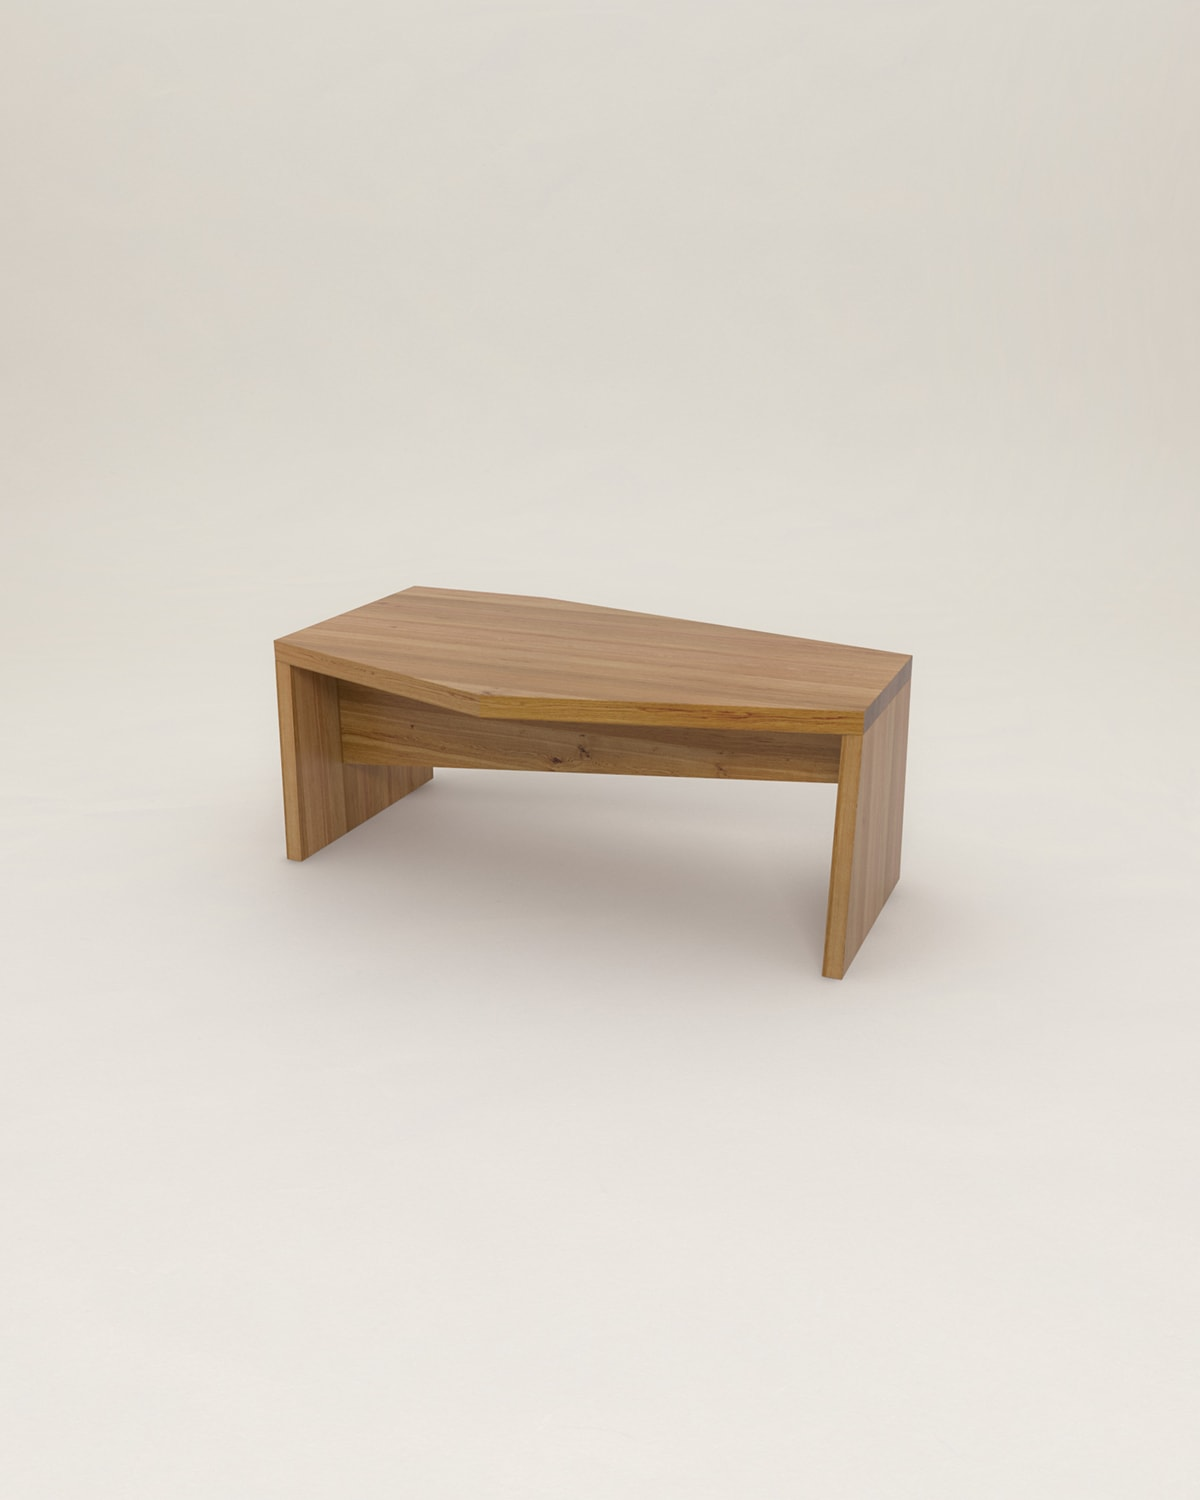 crooked_coffee_table_07_2